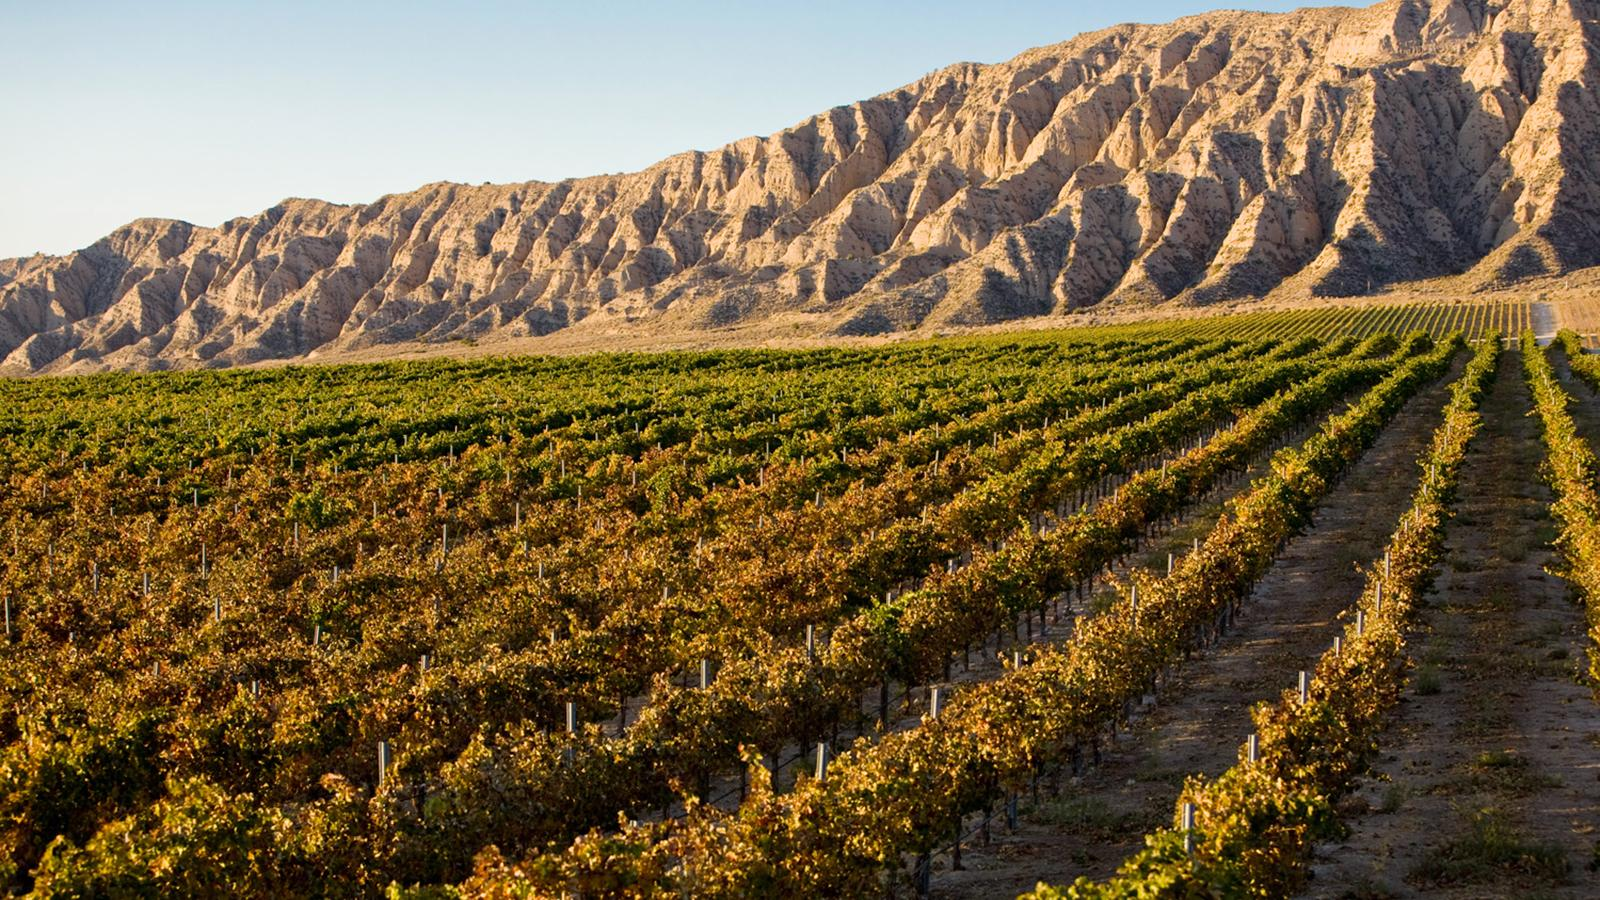 The Arroyo Grande Valley is home to Laetitia's Pinot Noir vineyards.